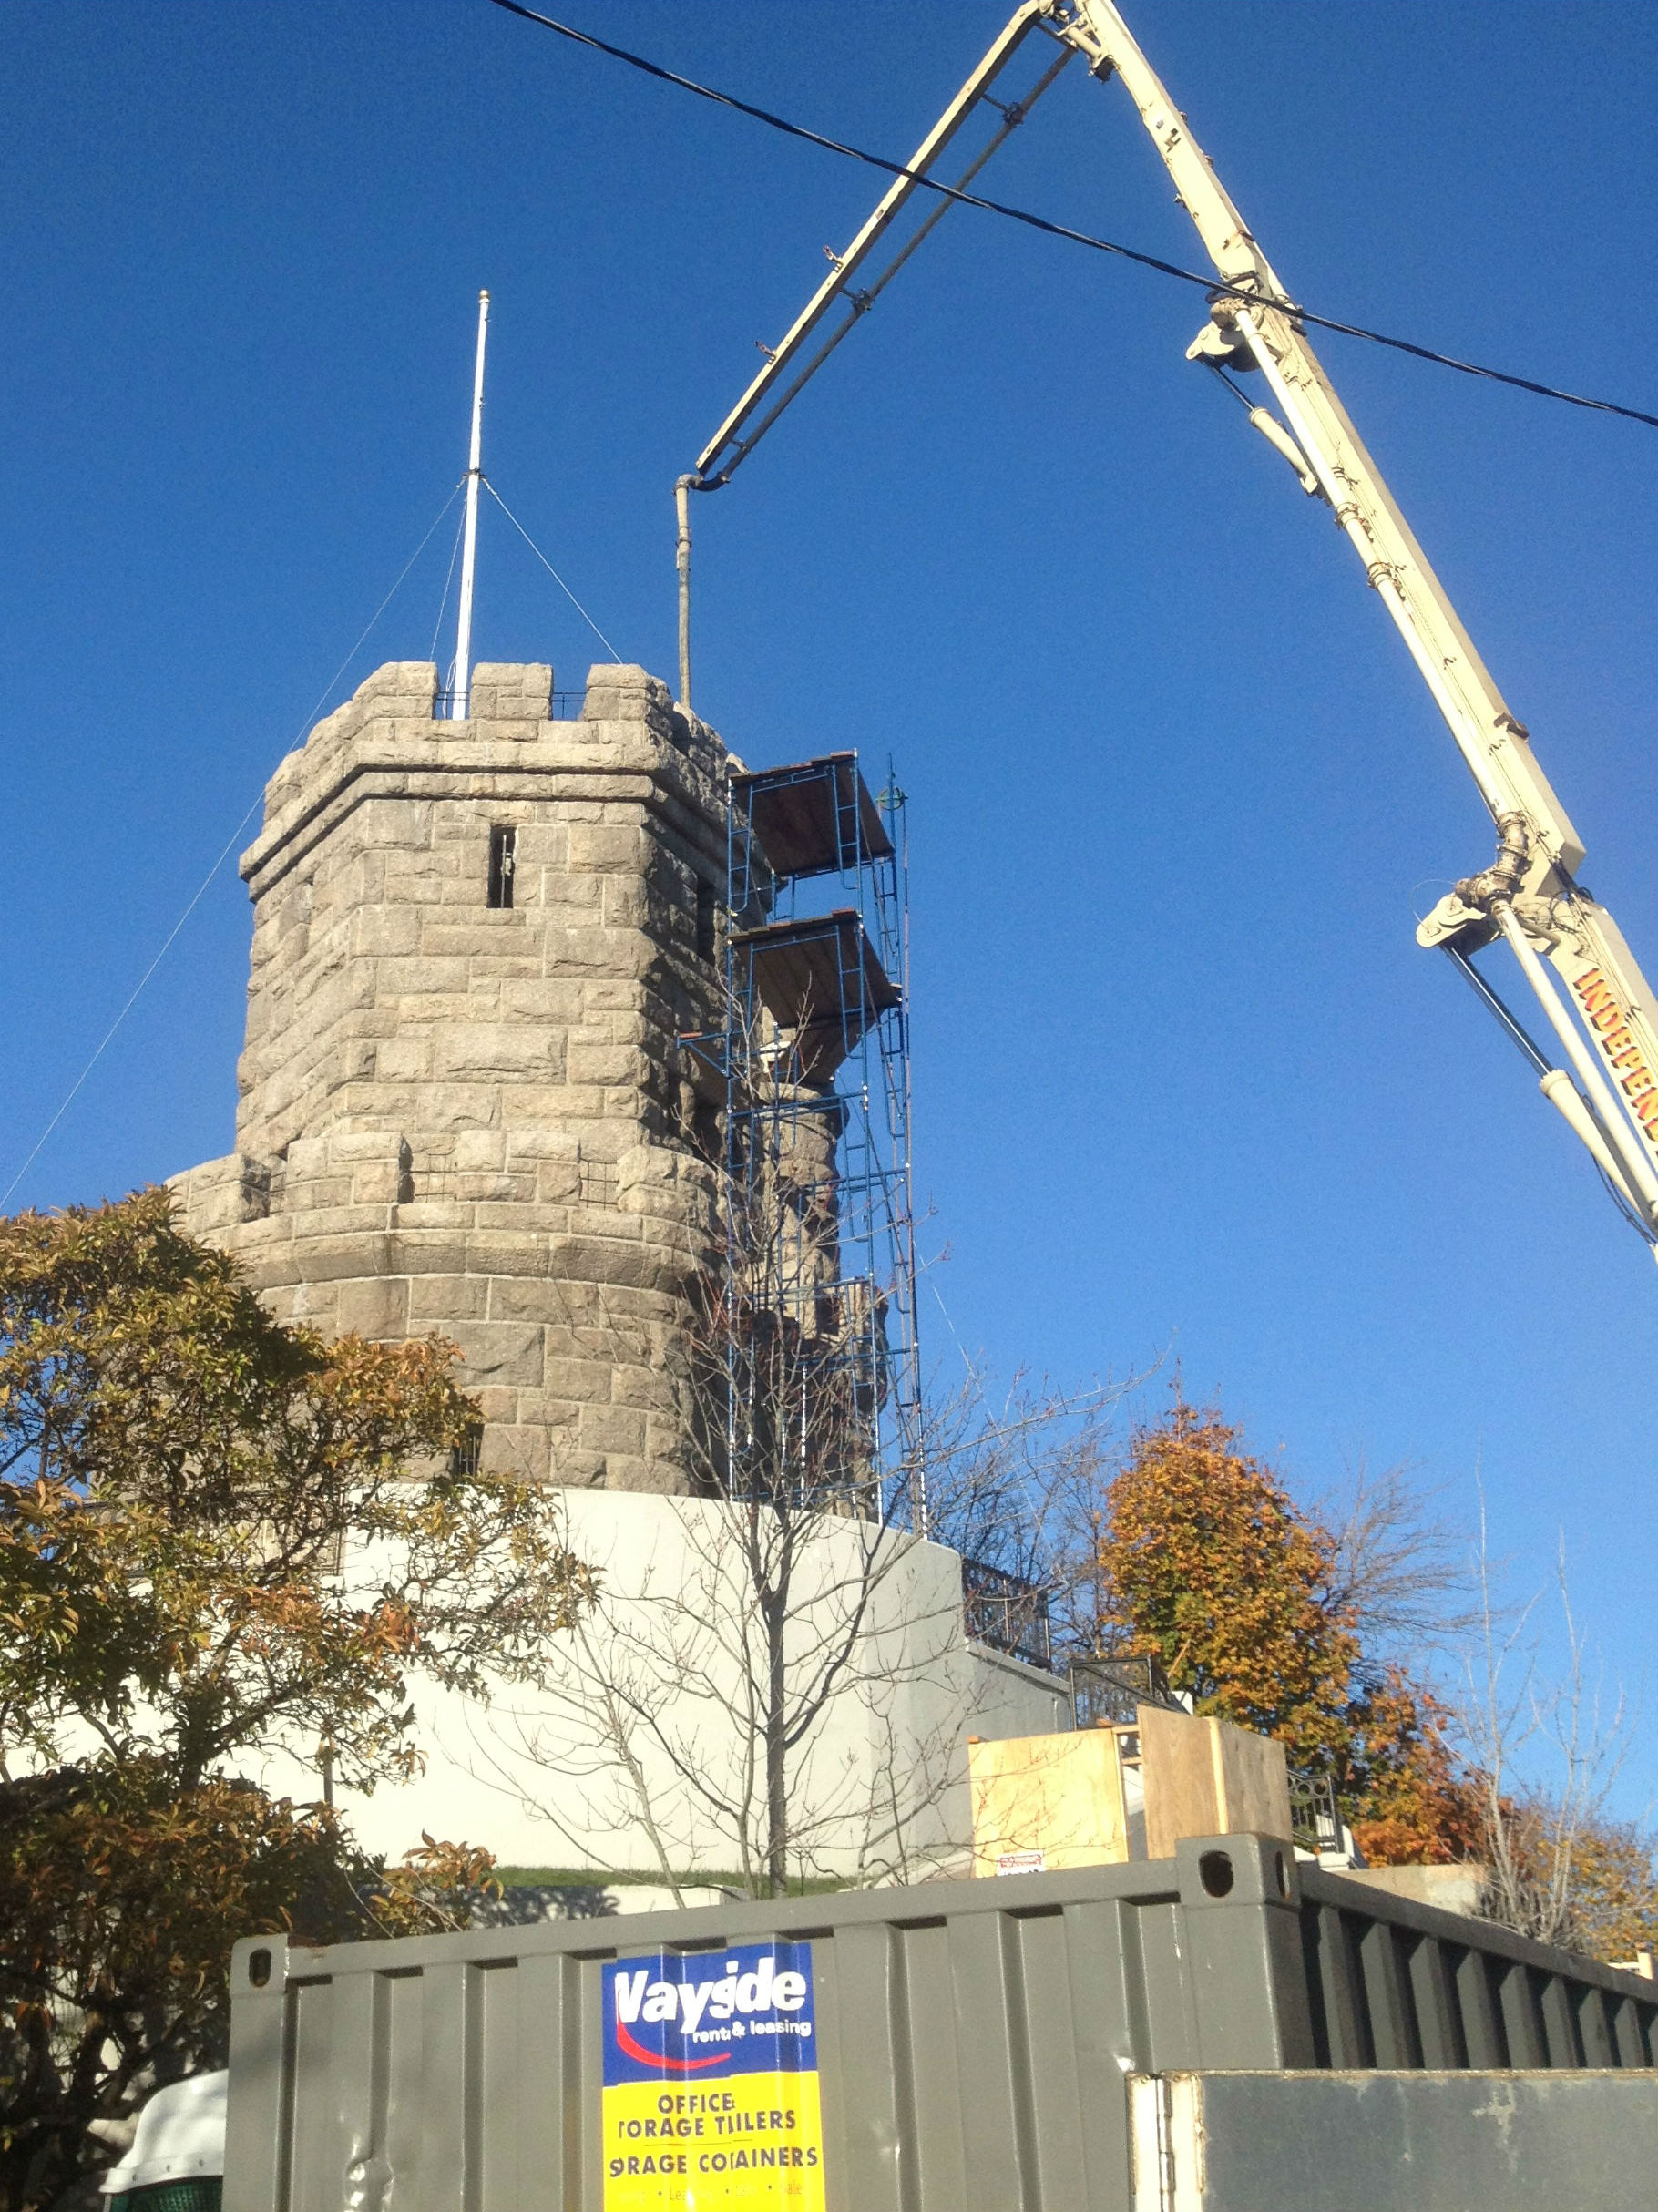 Prospect Hill Tower under construction, 2015 stabilization work